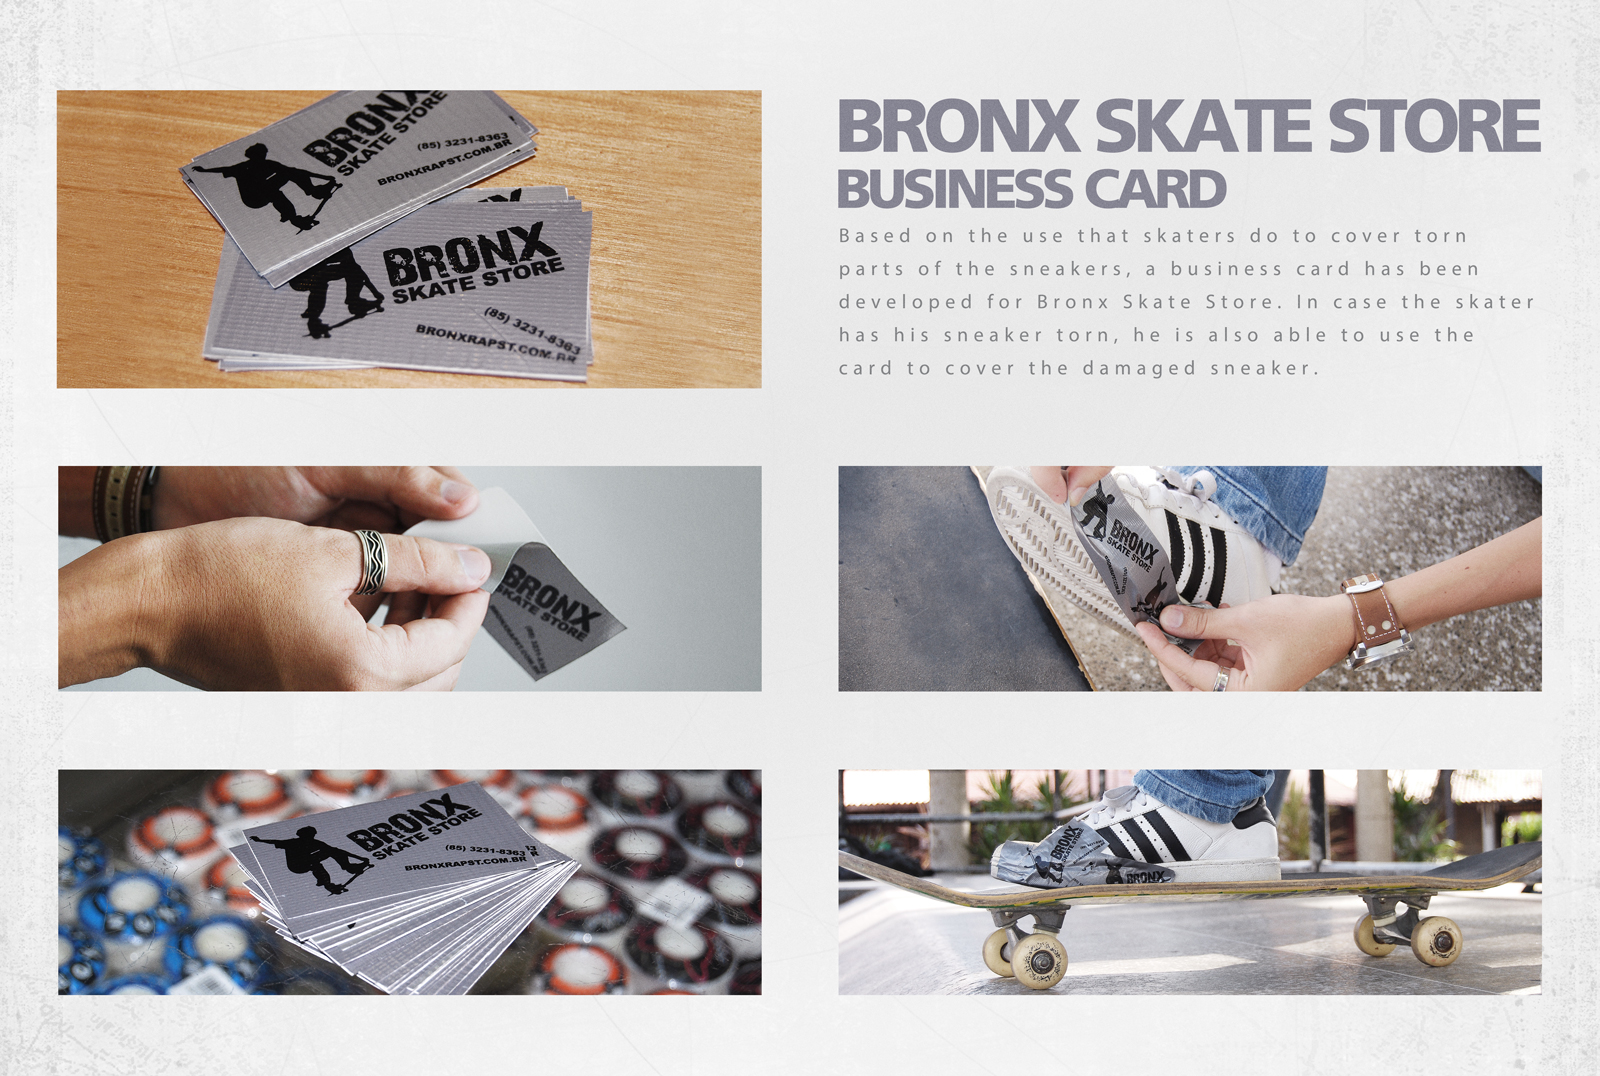 Bronx skate store direct advert by todacor business card ads of business card reheart Images